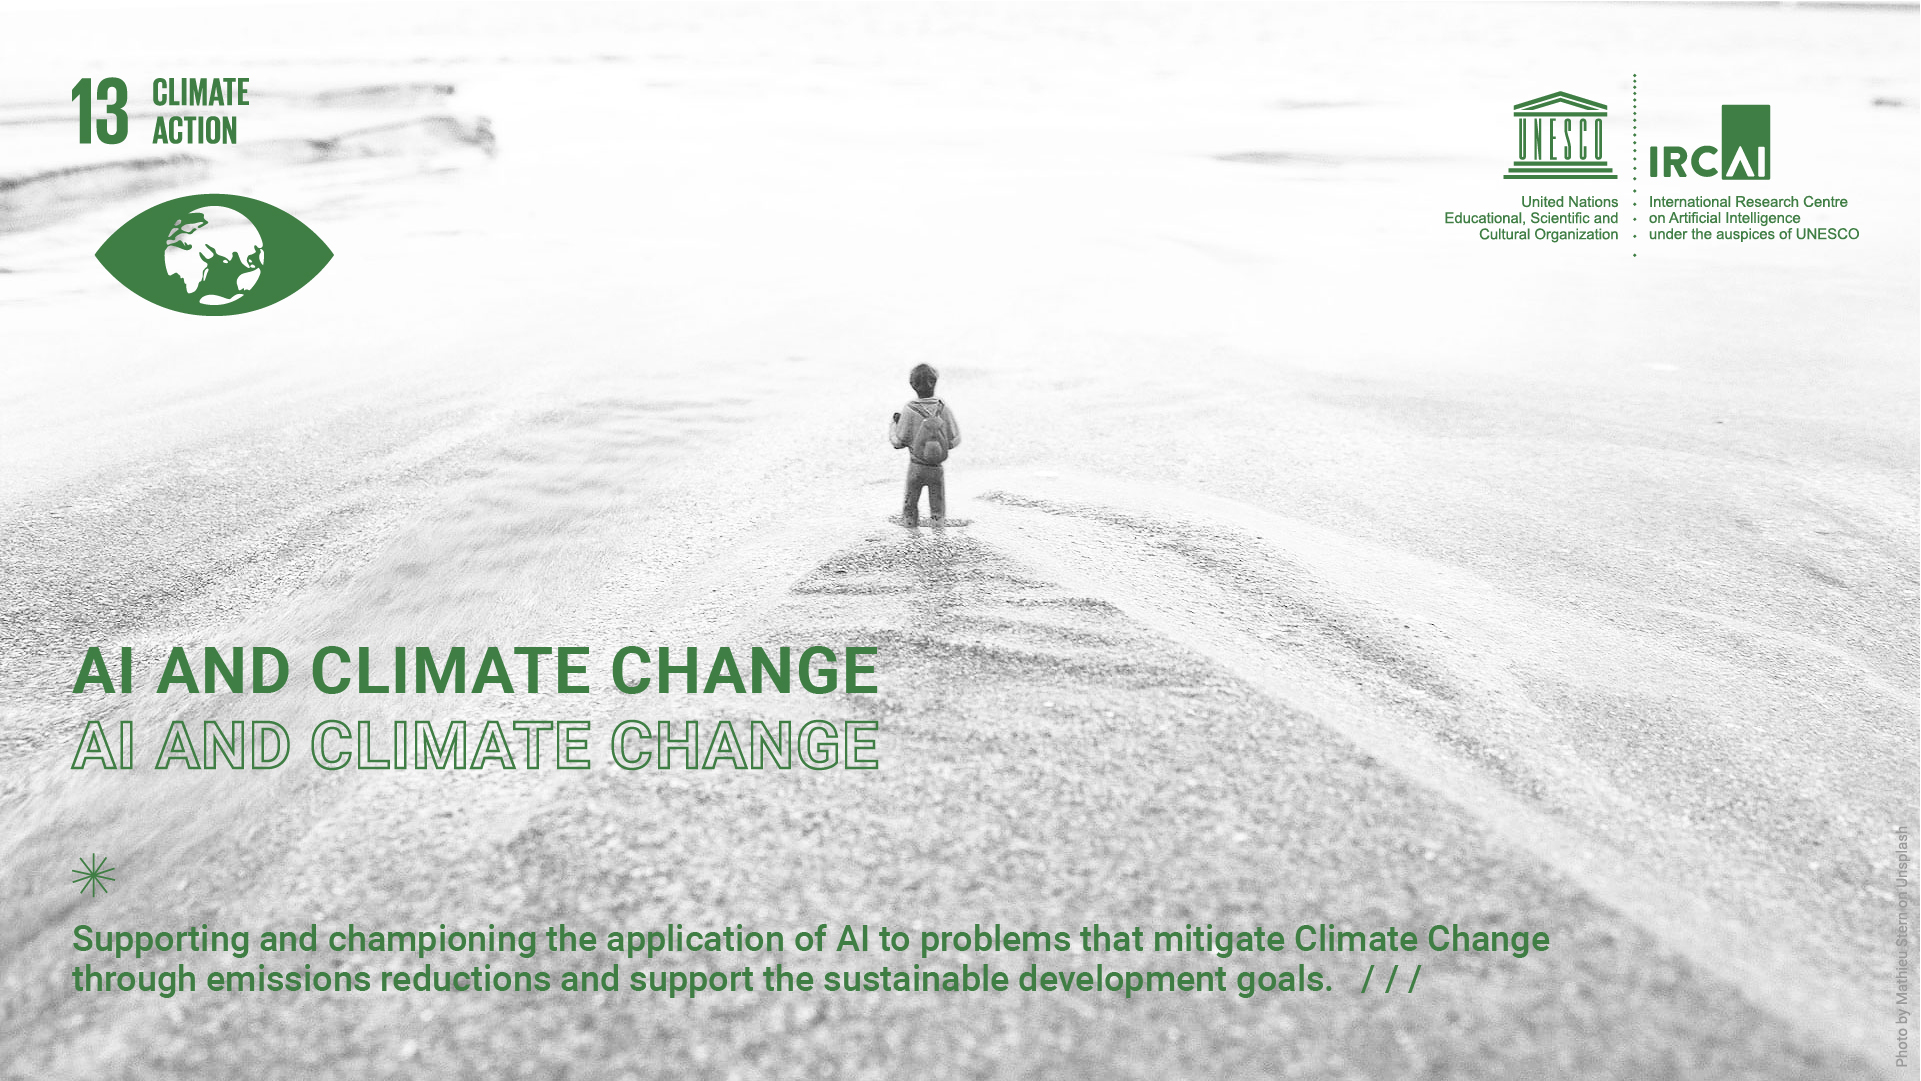 digiSS_Graphics 4 - AI and Climate Change